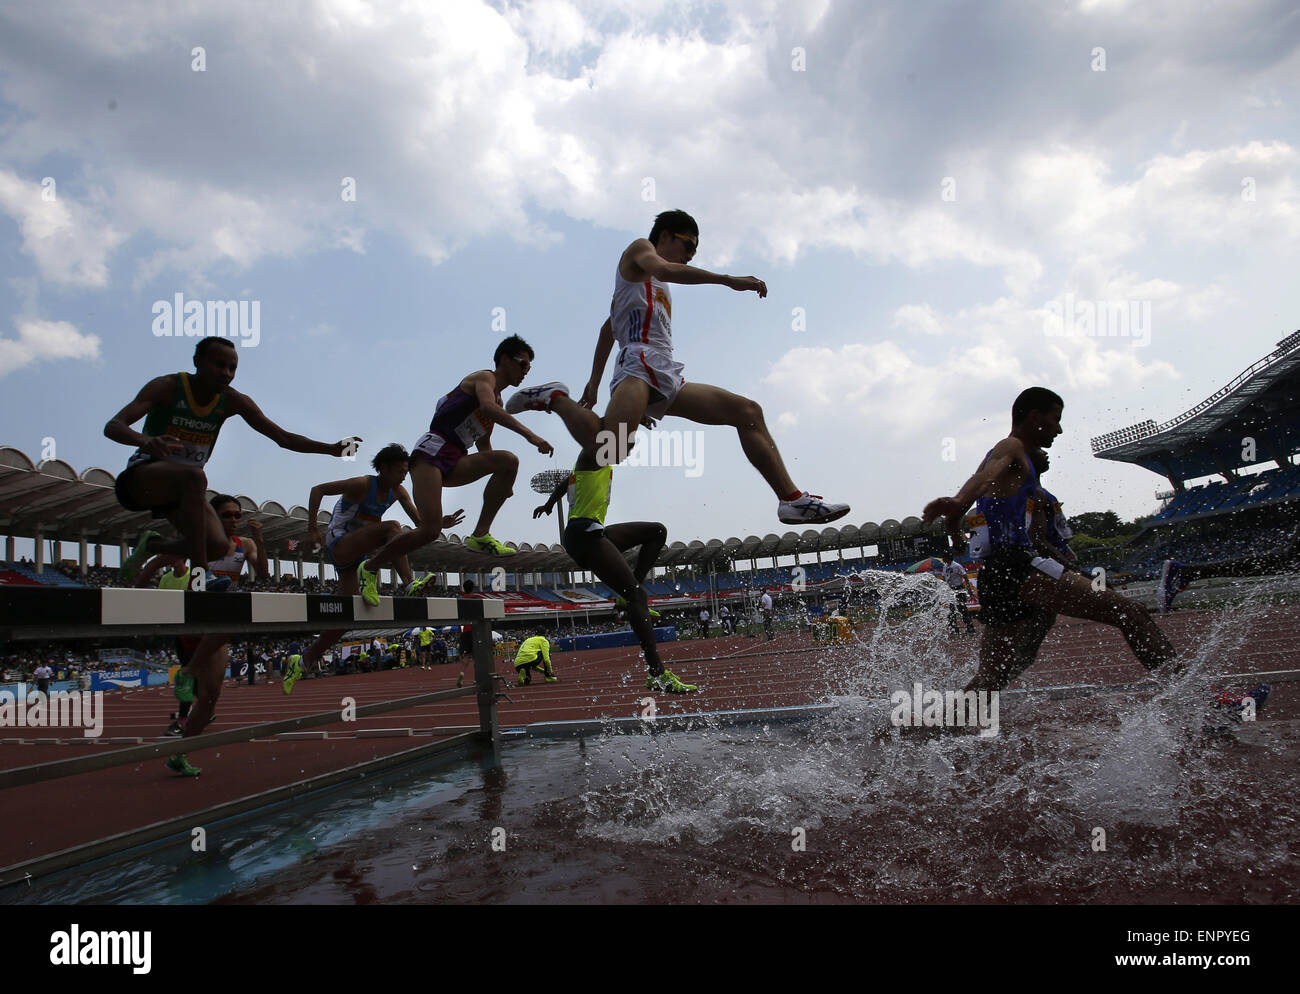 Tokyo, Japan. 10th May, 2015. Runners jump over the water hazard in the men's 3000 metre steeplechase at Seiko - Stock Image